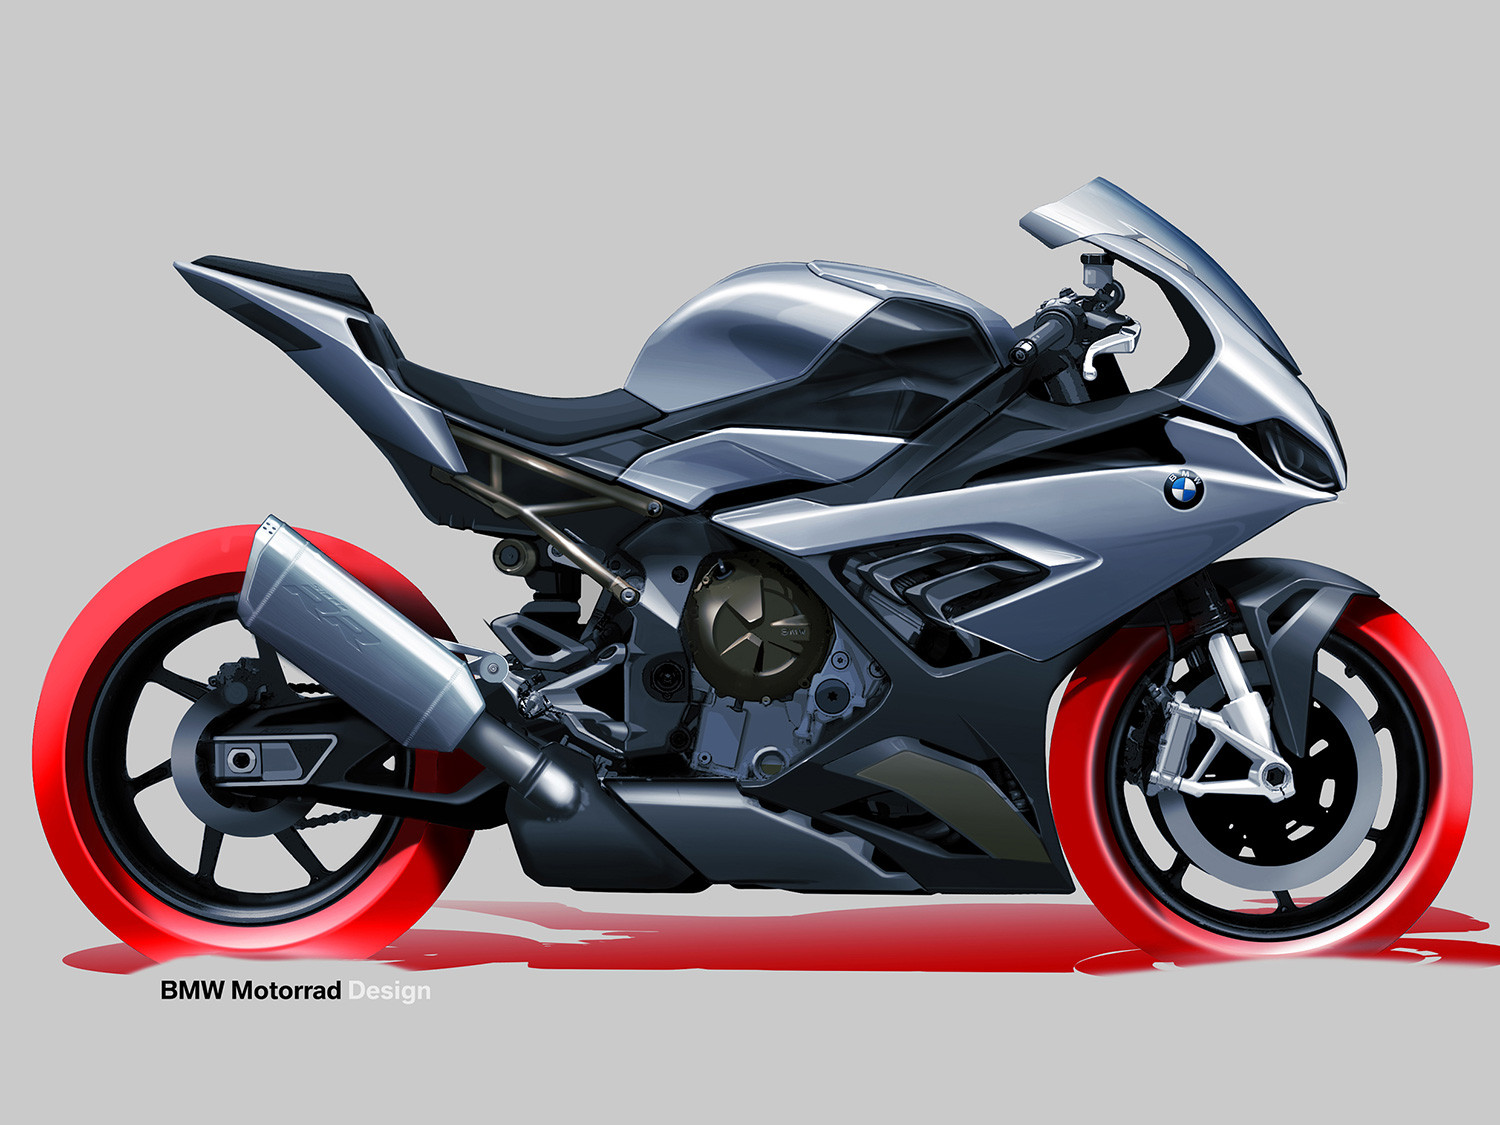 Review More On 2019 Bmw S1000rr Price Specs And More Adrenaline Culture Of Motorcycle And Speed